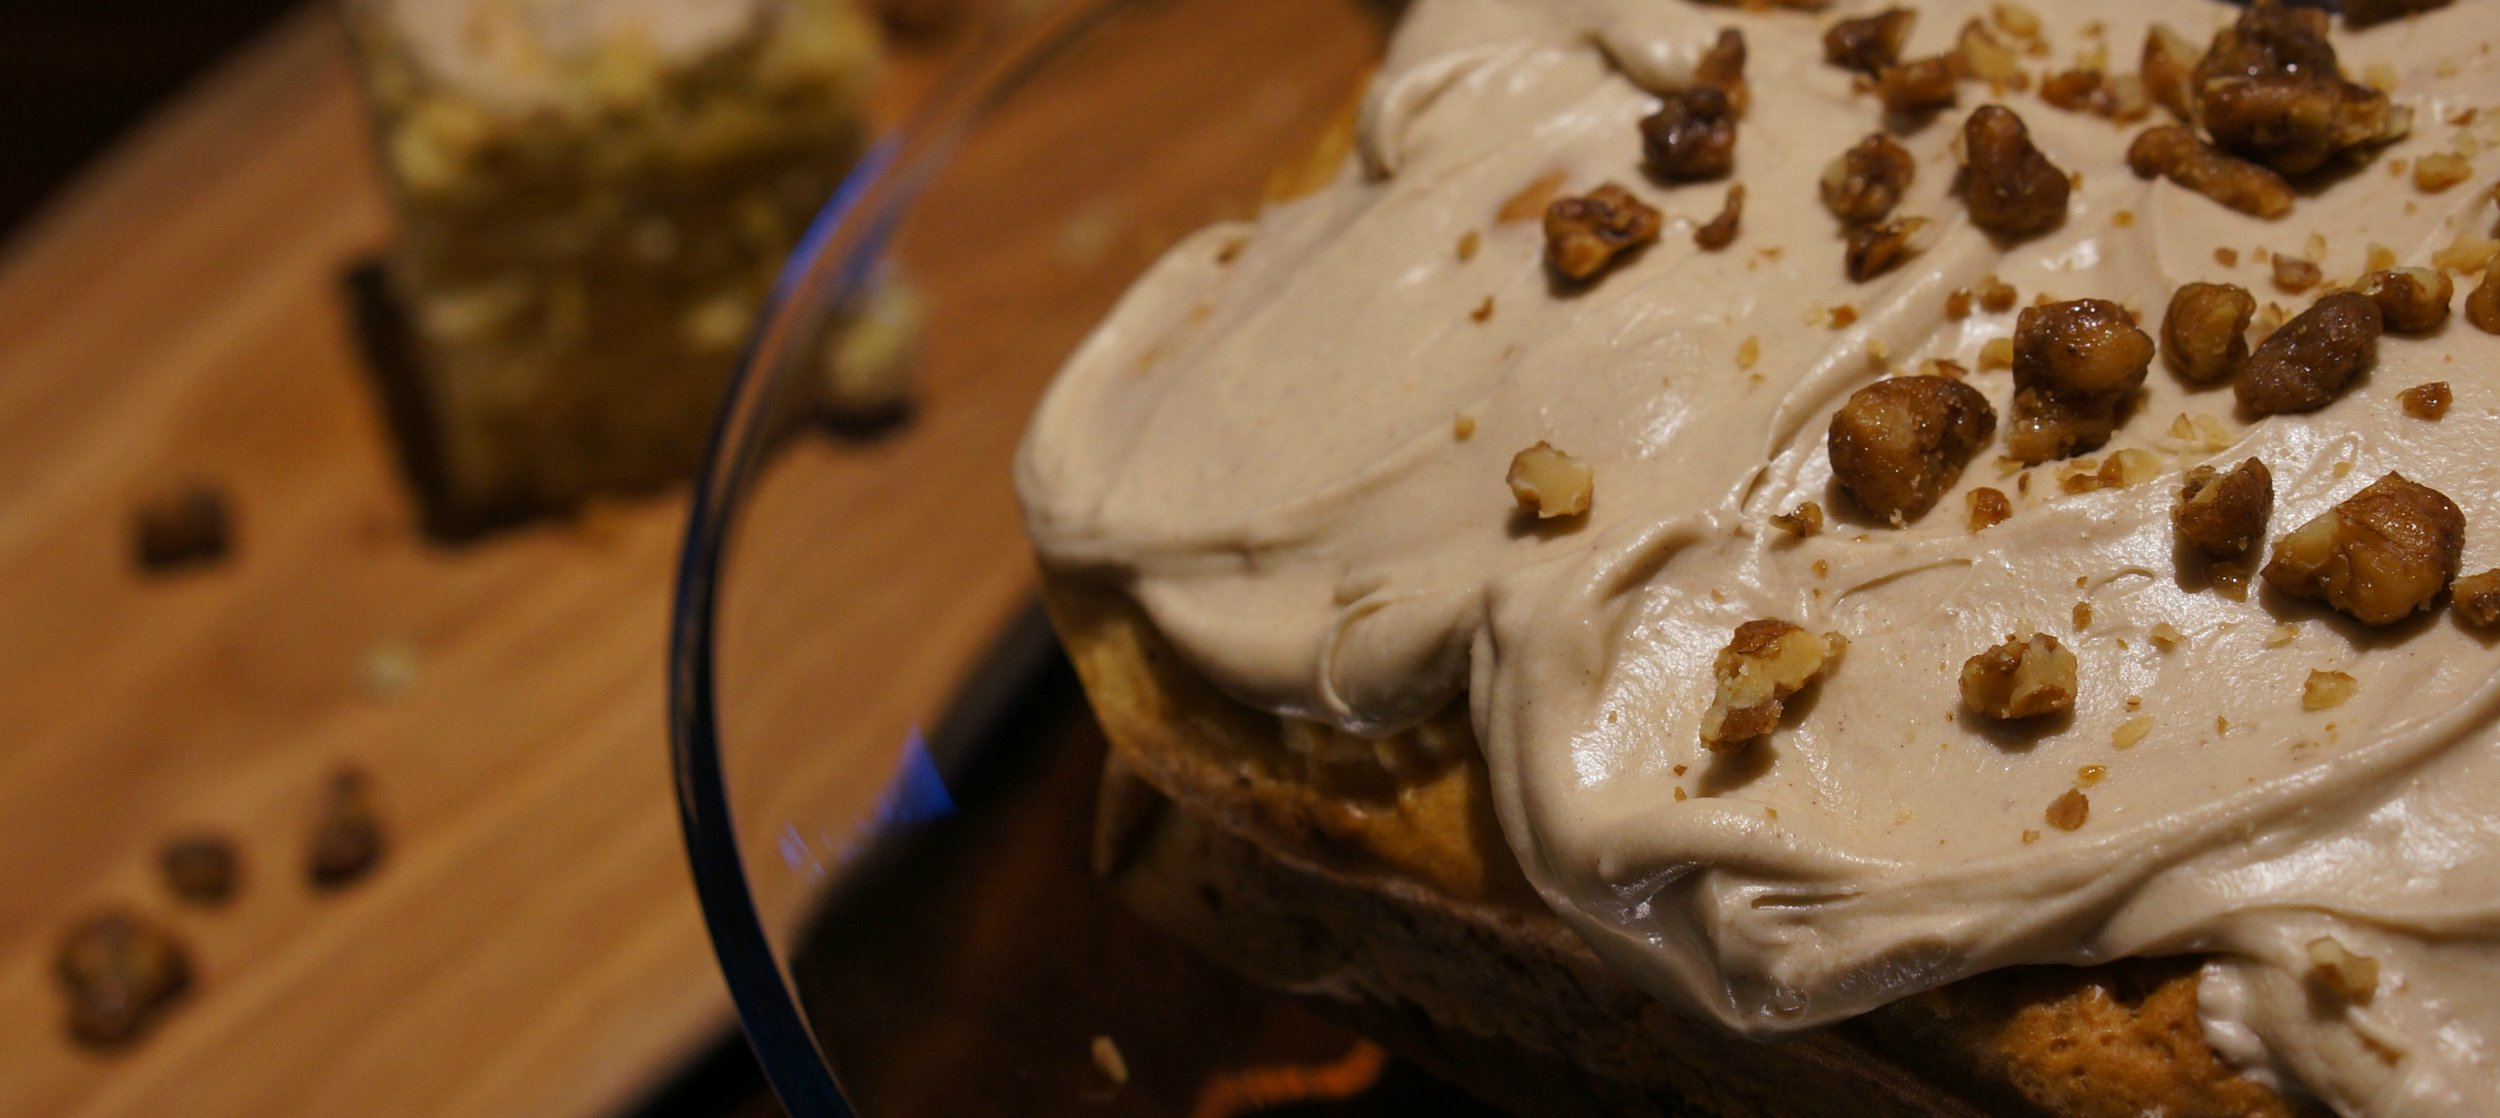 cake with frosting and chopped nuts.jpg